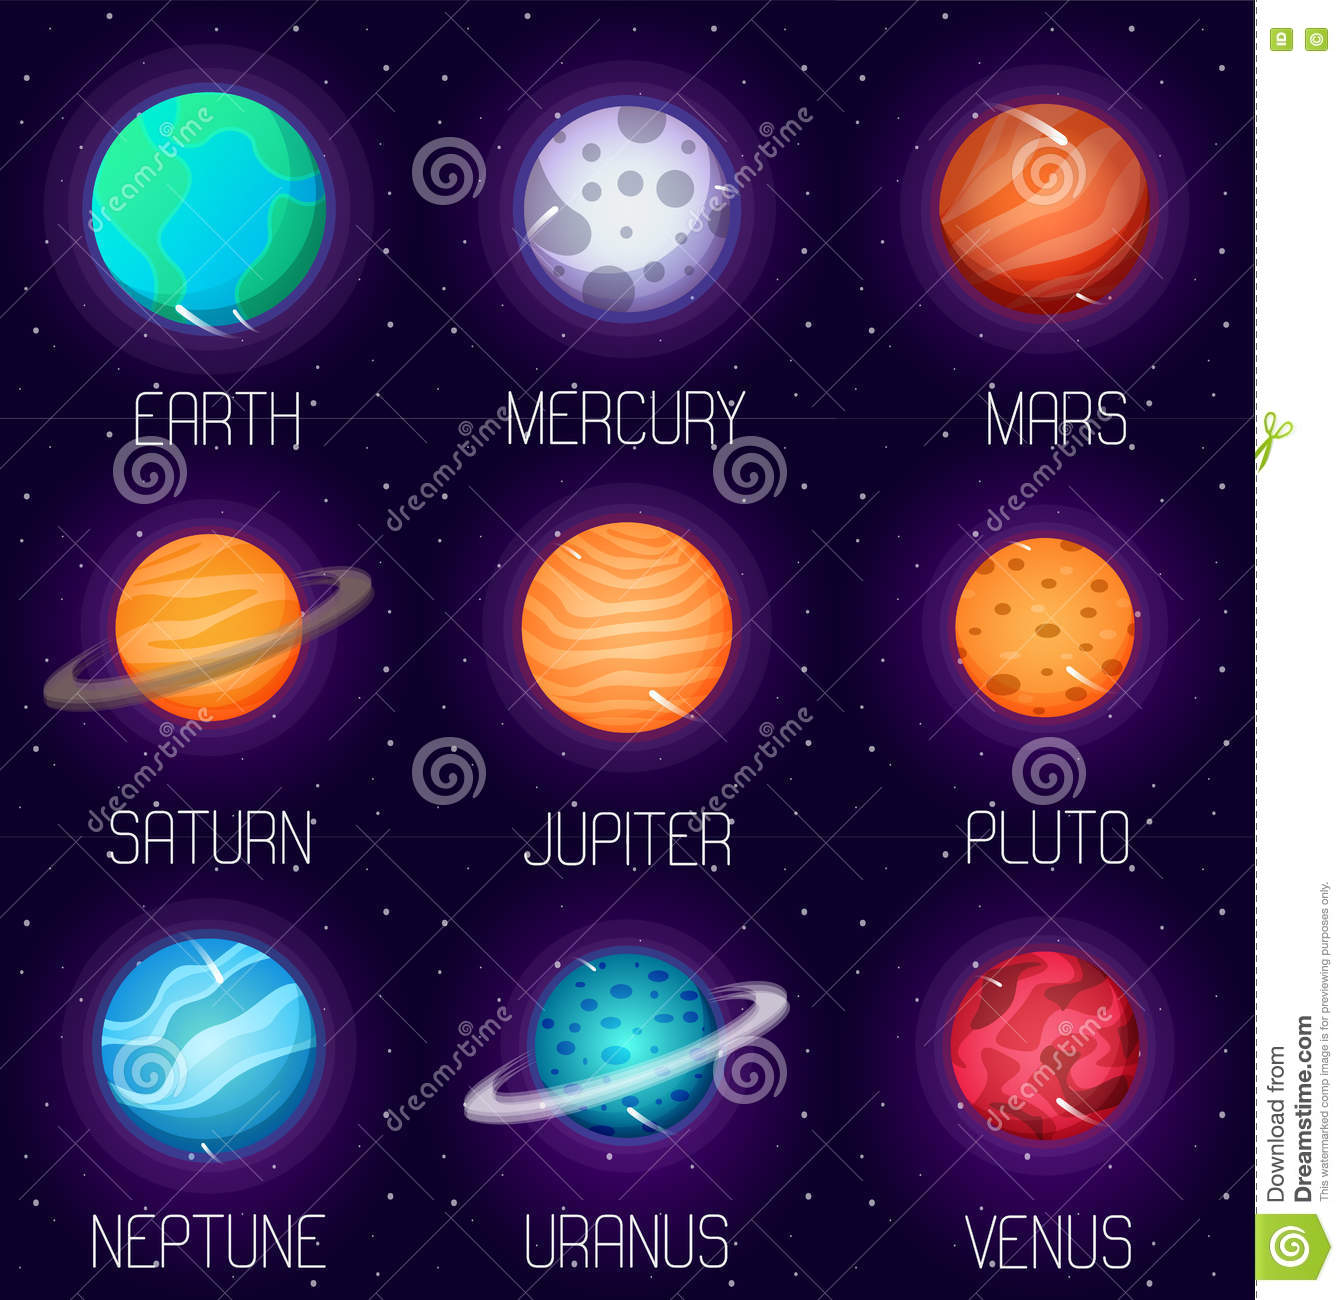 Planets cartoons illustrations vector stock images for Outer space garden design cumbria